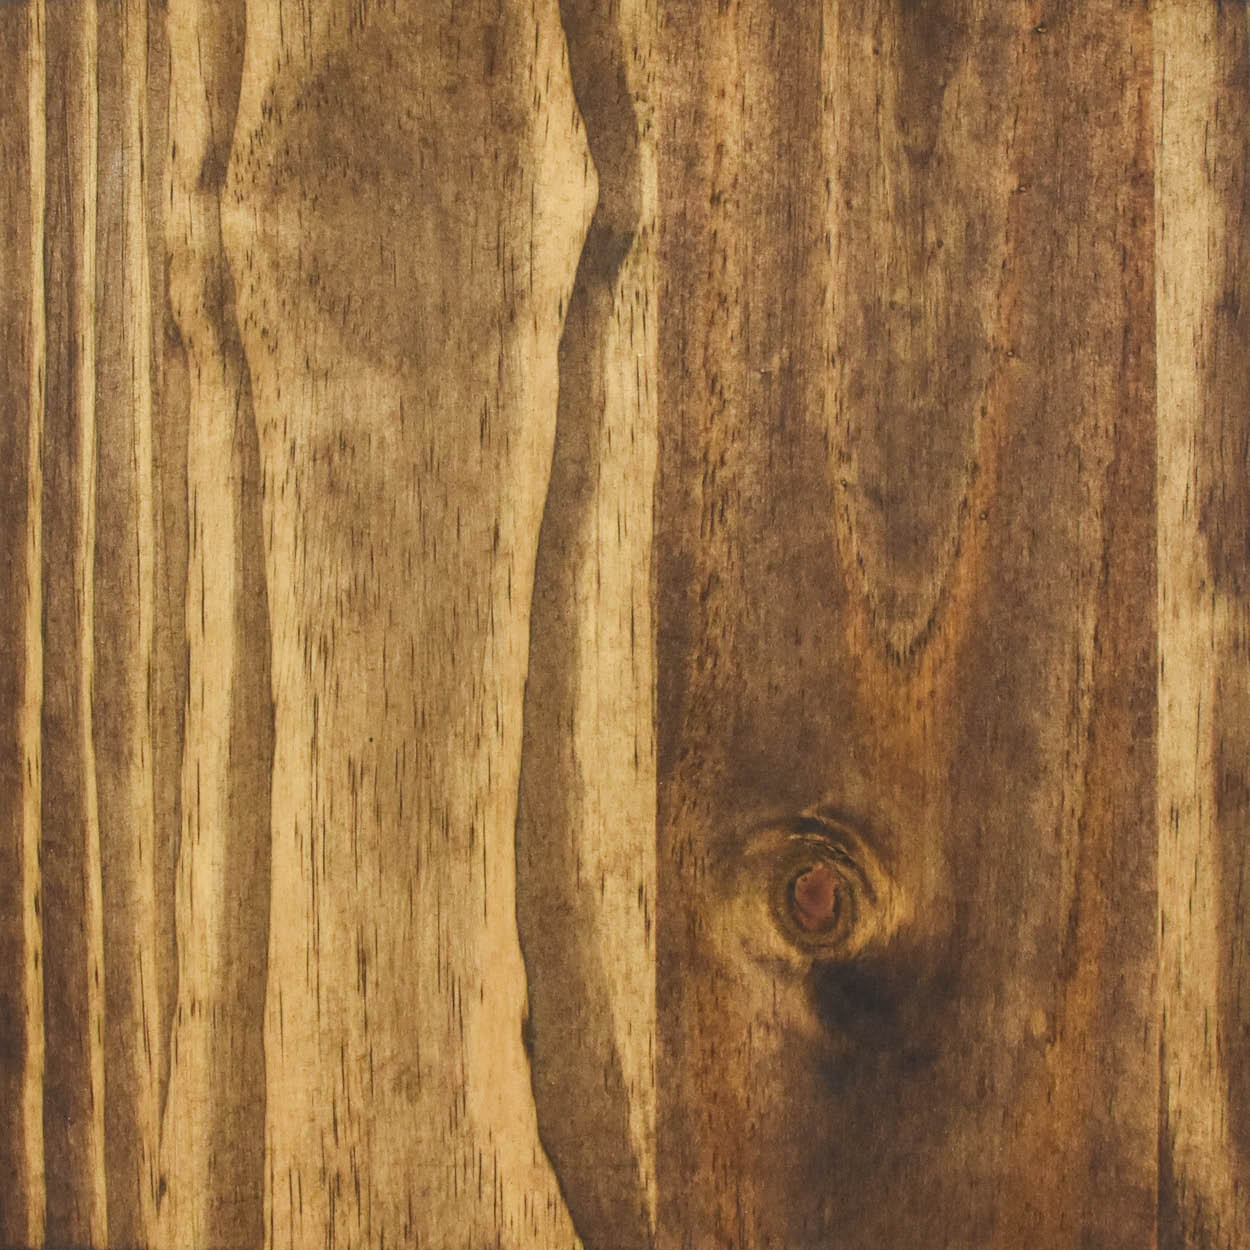 New Wood: Walnut